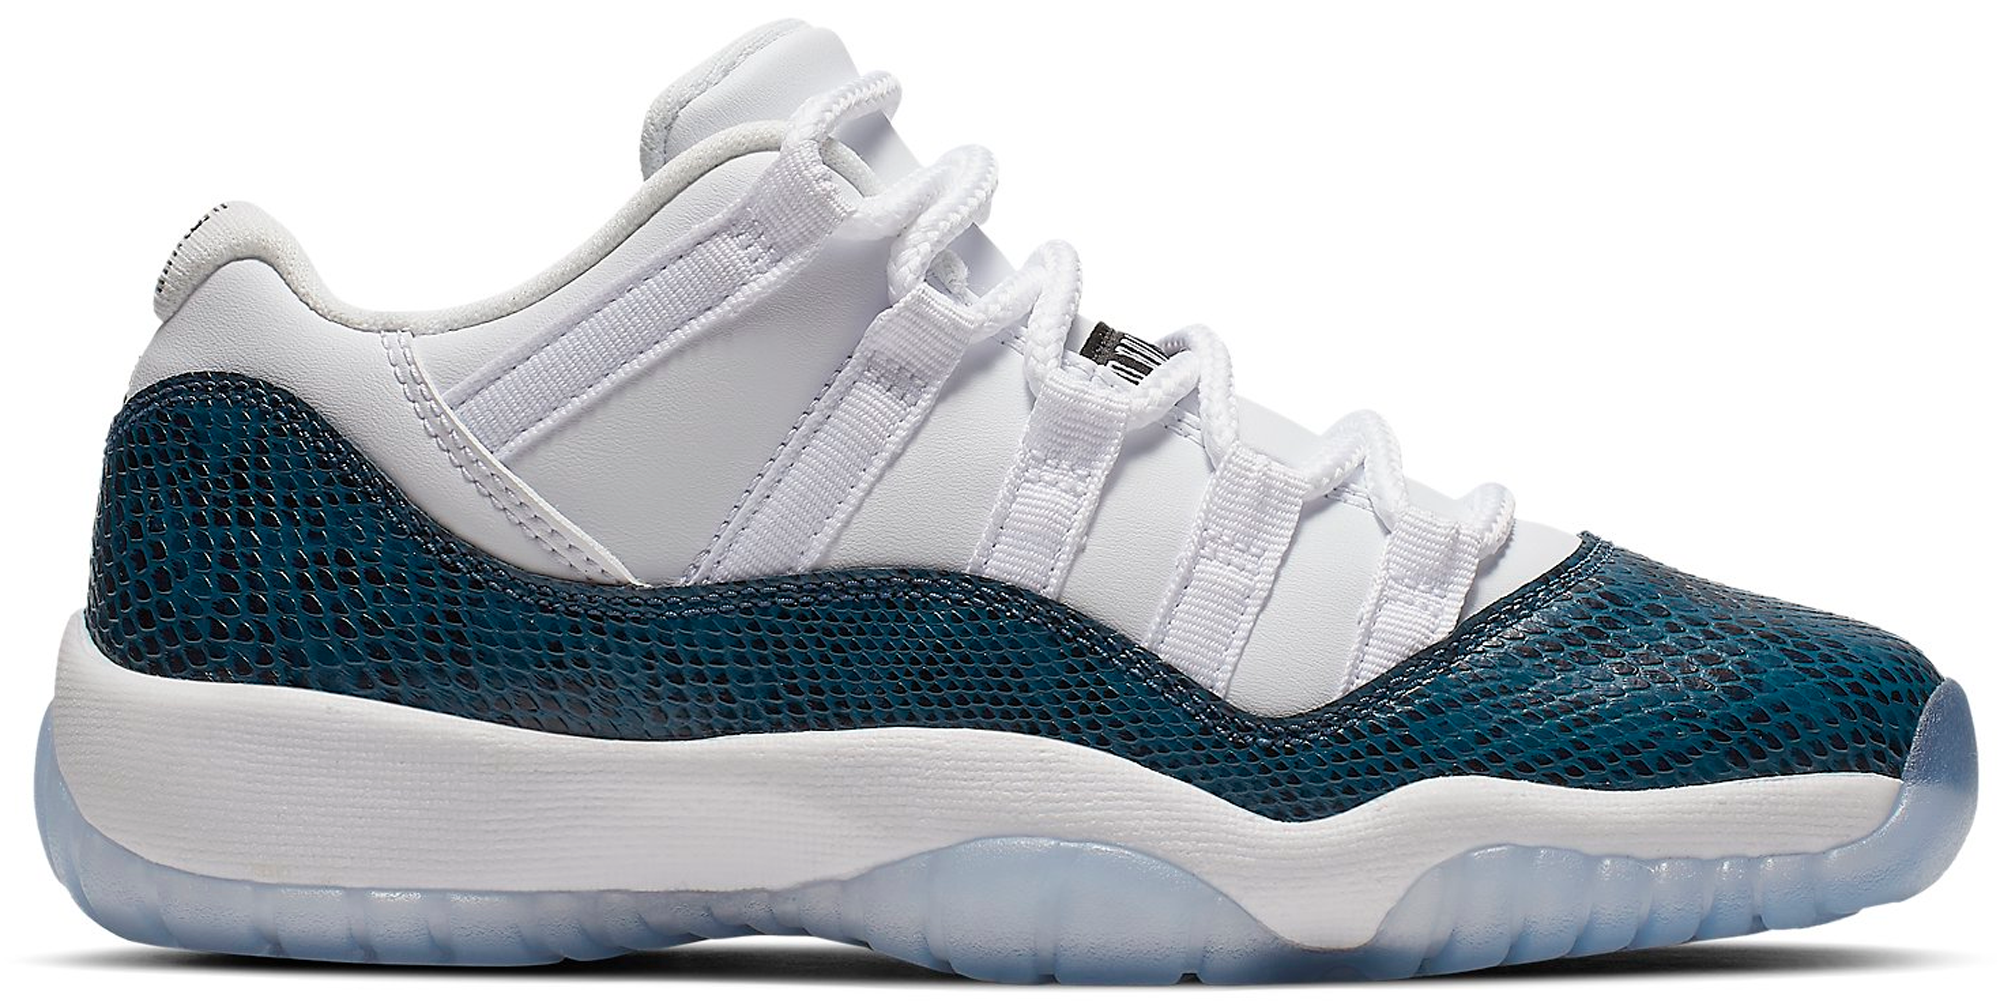 Jordan 11 Retro Low Snake Navy 2019 (GS)